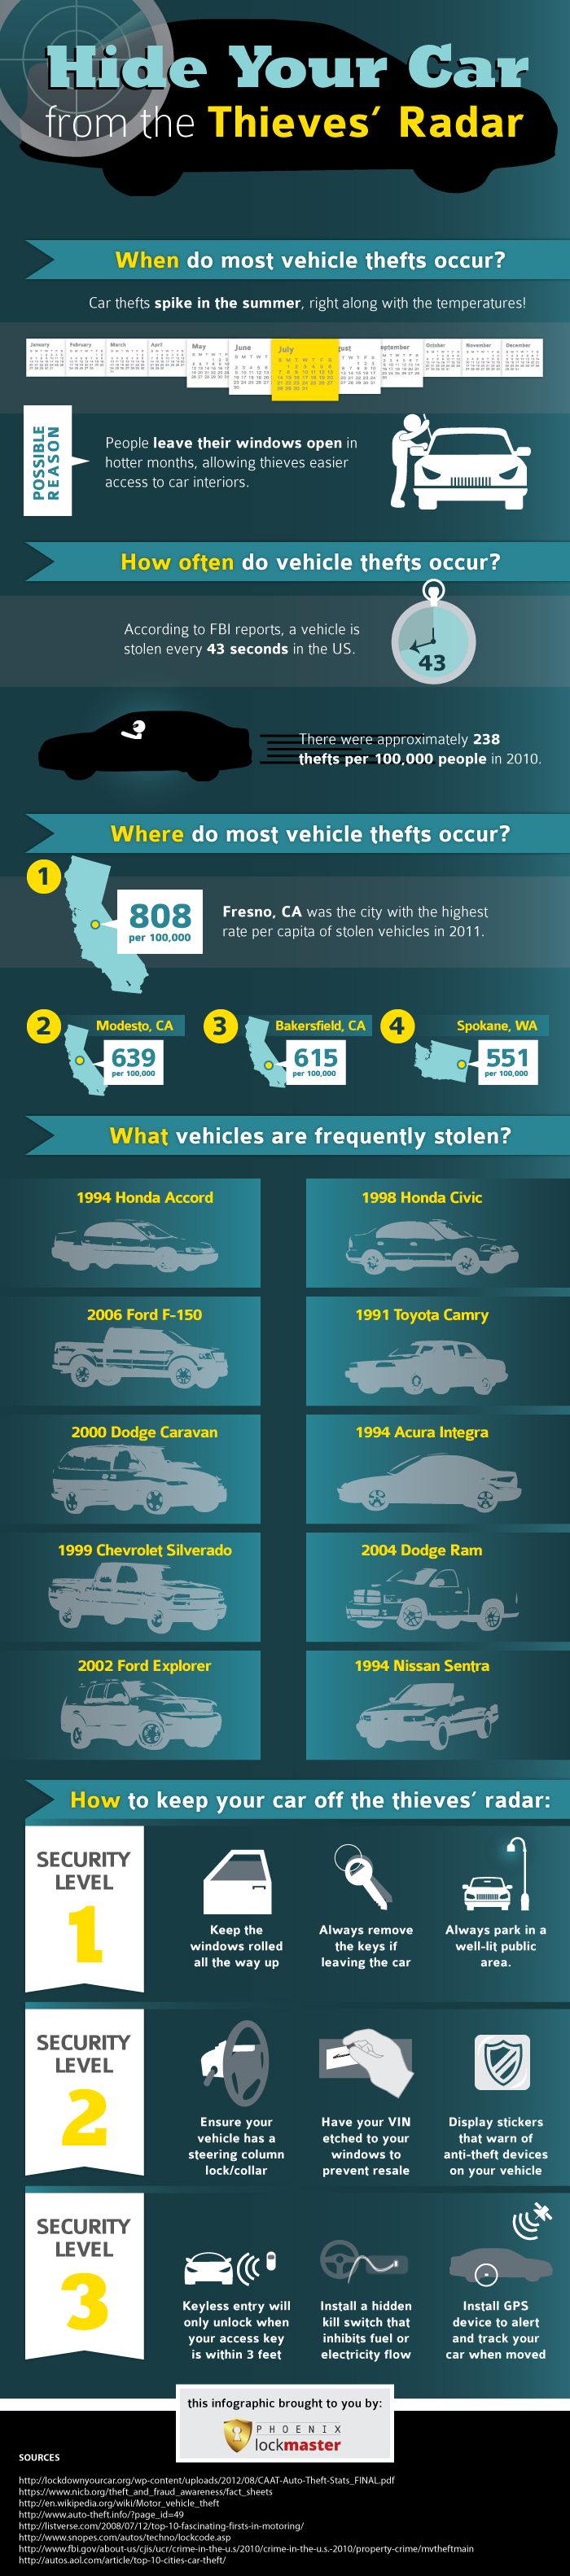 Car Theft and Security in the USA